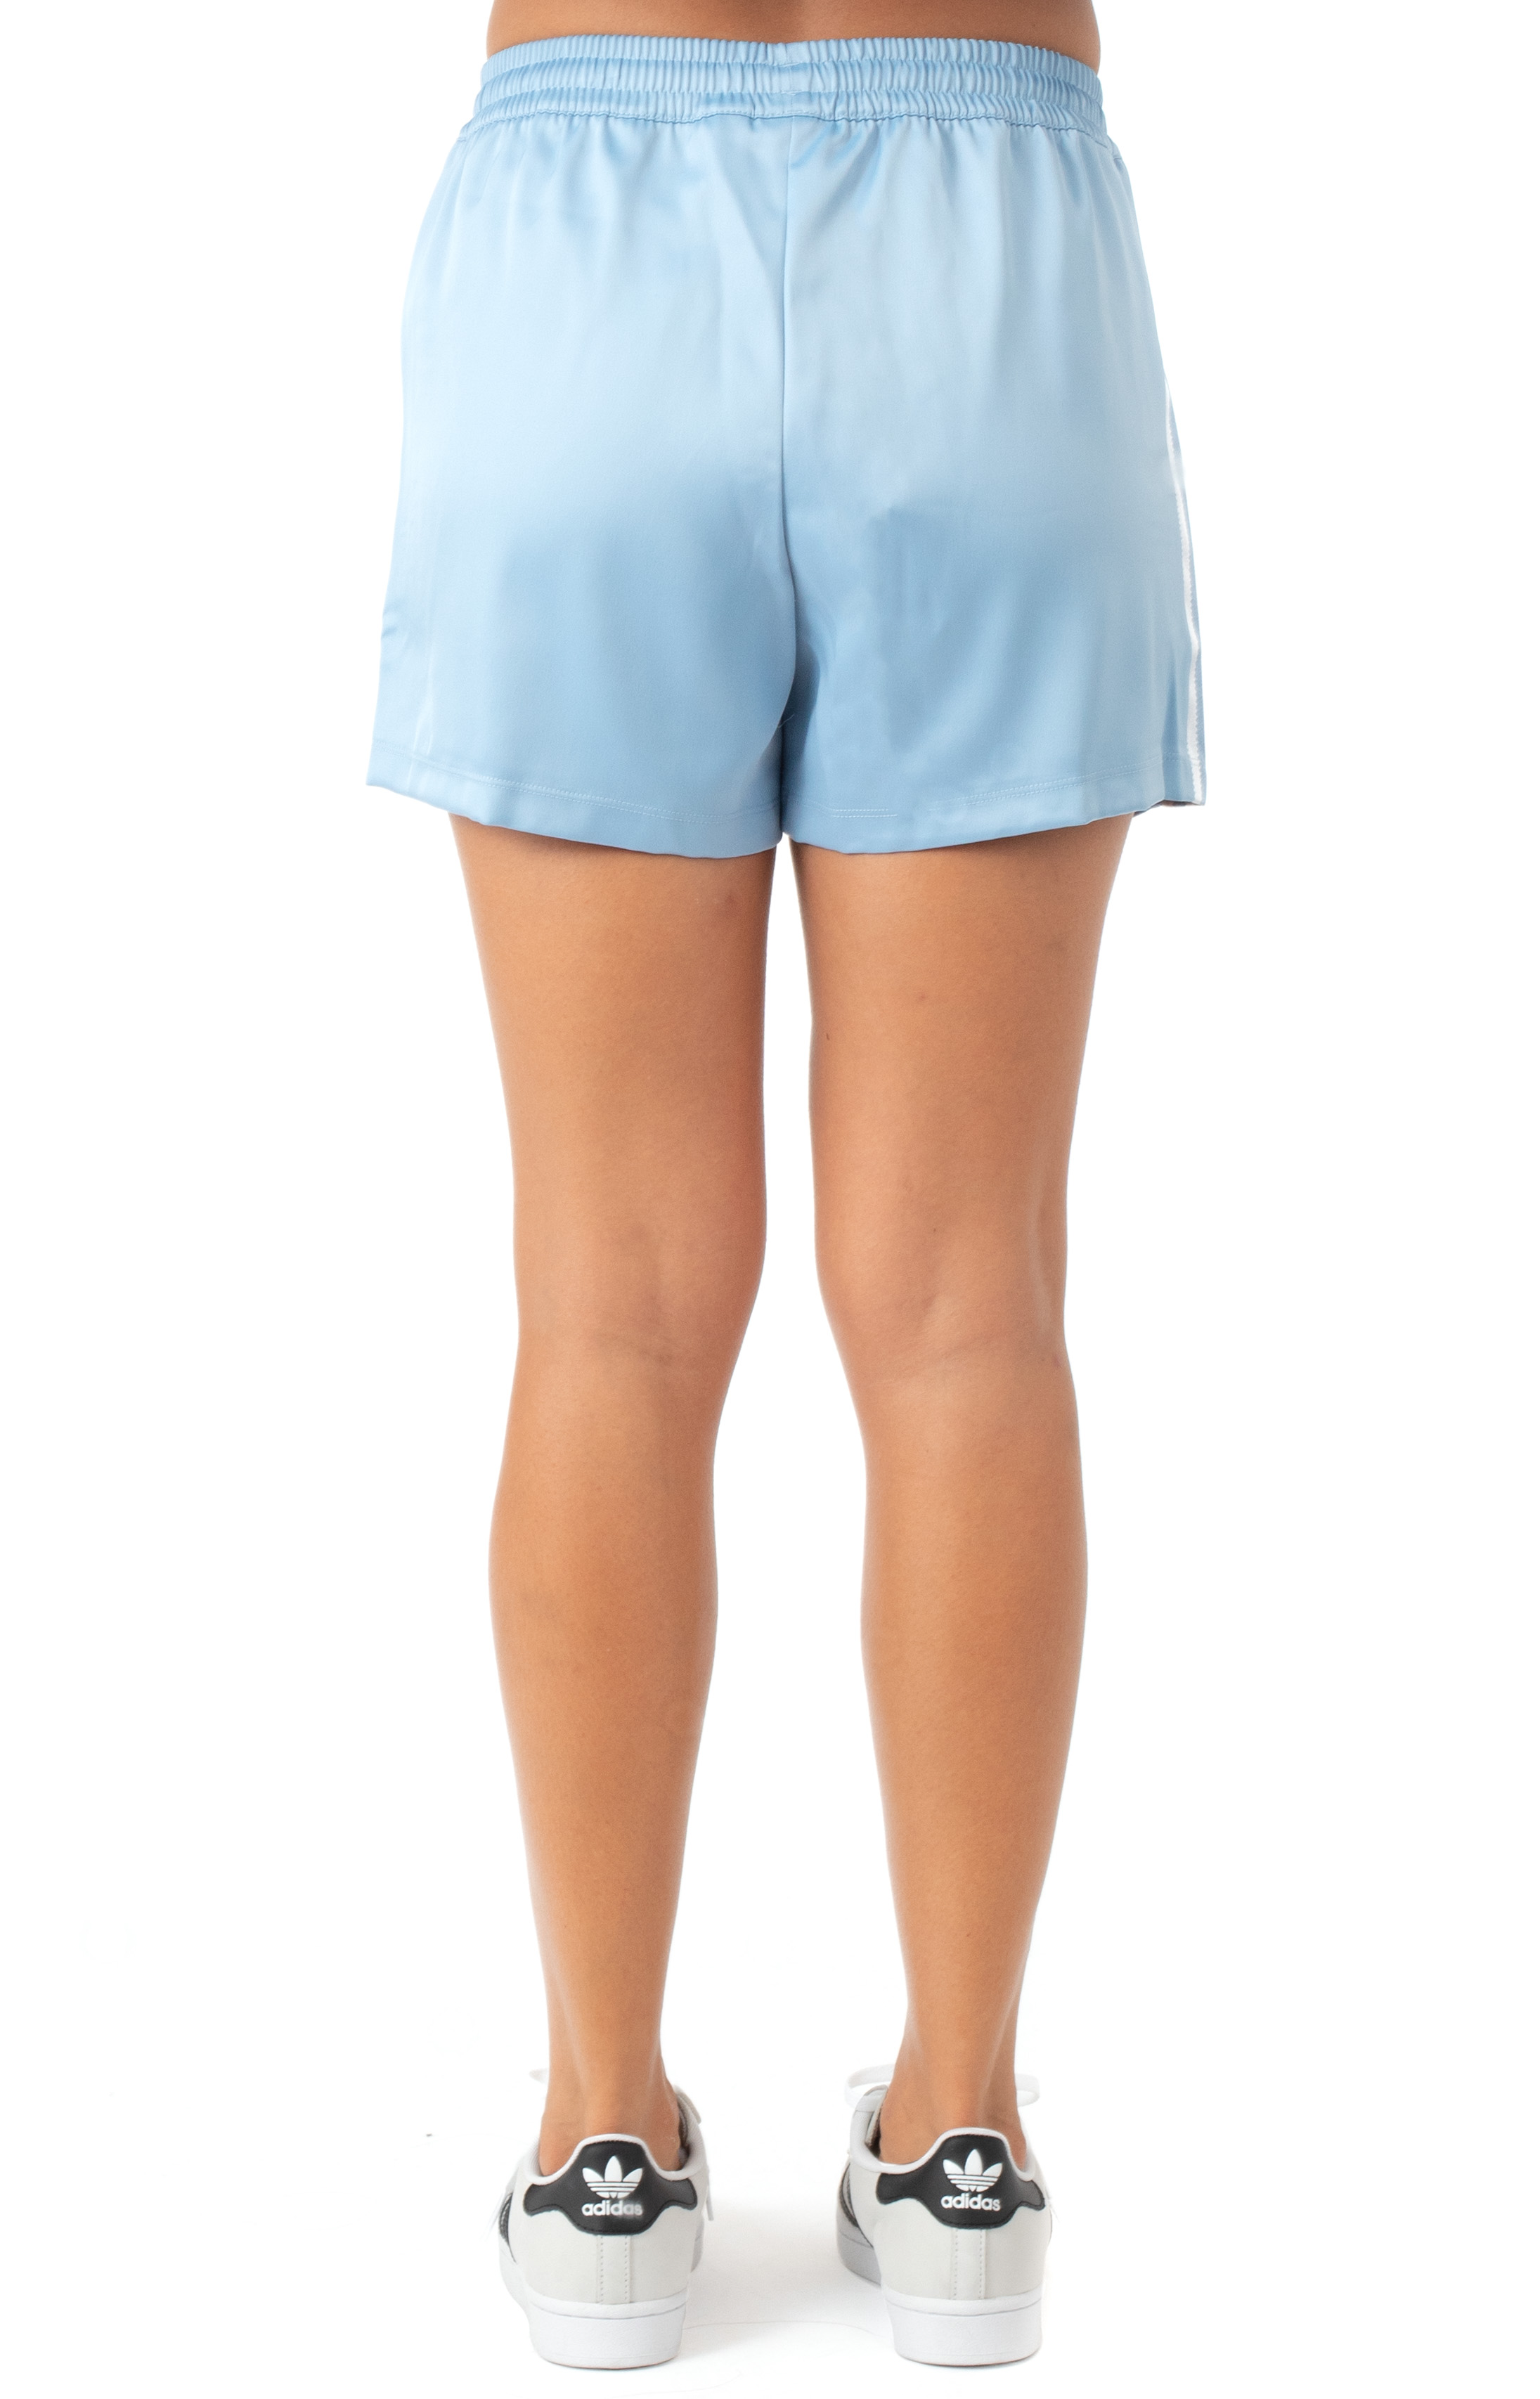 (H37808) 3 Stripe Shorts - Ambient Sky  3